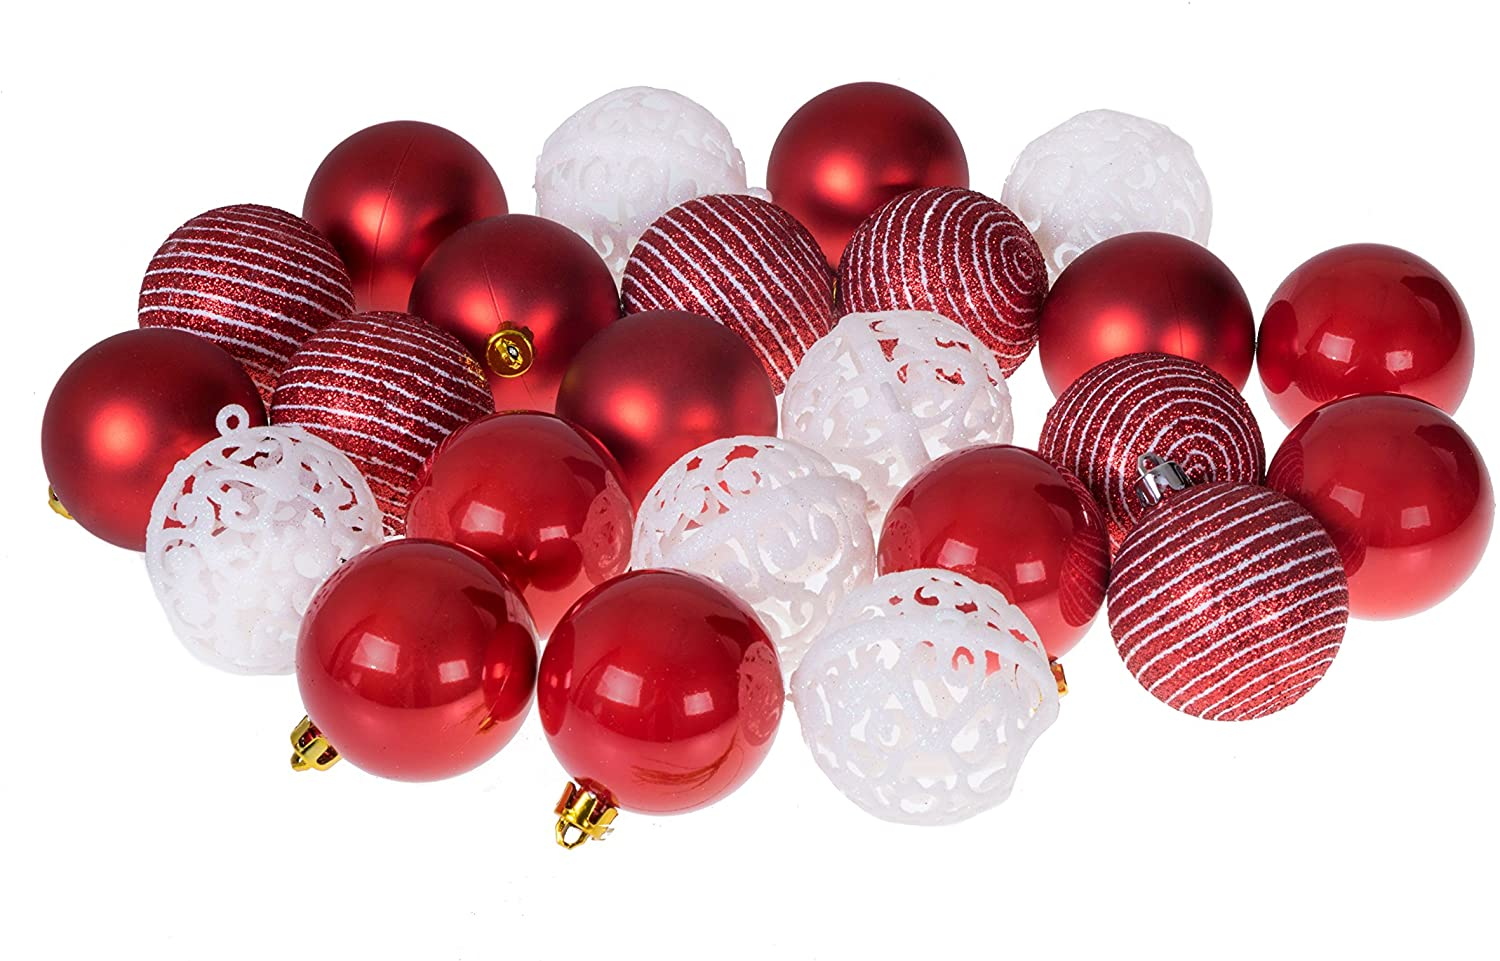 Clever Creations Christmas Ornament Ball Set Red and White | 24 Pack | Festive Holiday Décor | Classic Design | Glitter, Gloss and Swirled Texture | Shatter Resistant | Hangers Included | 55mm